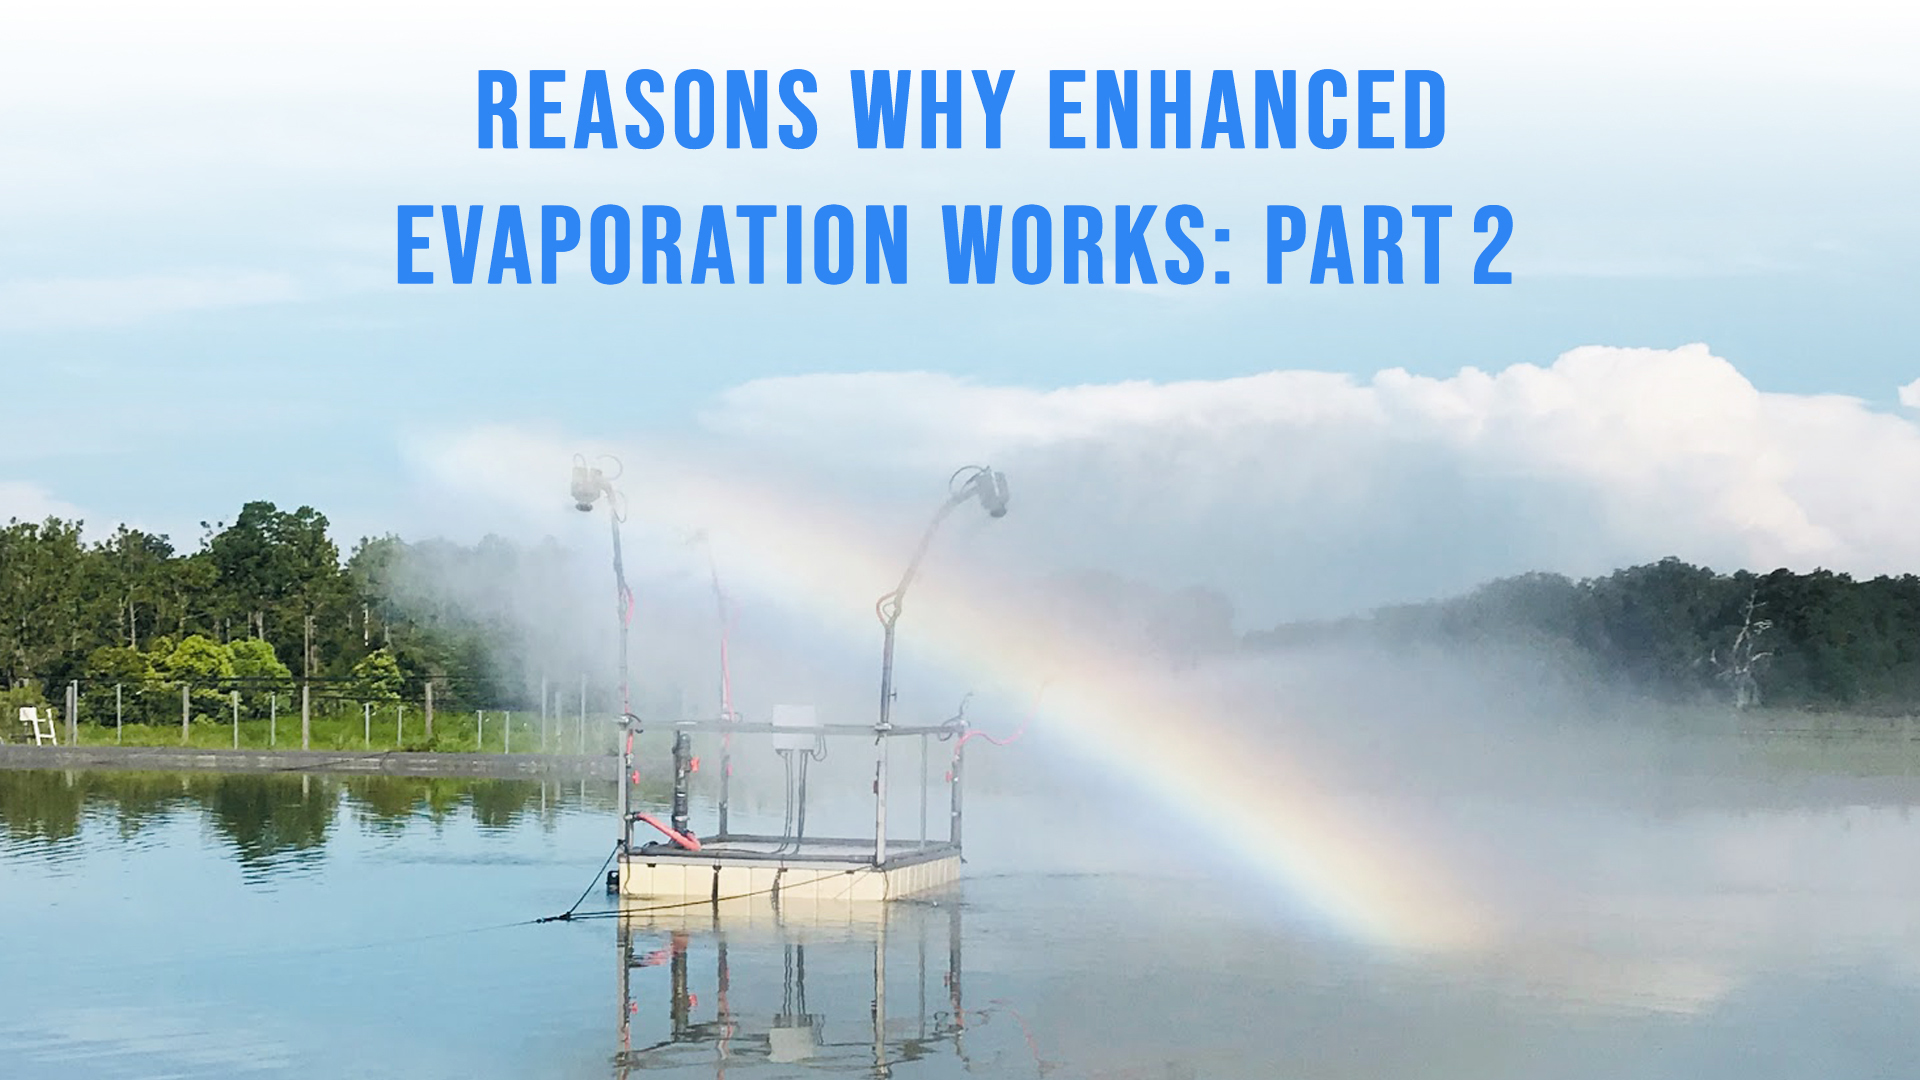 Reasons Why Enhanced Evaporation Works: Part 2